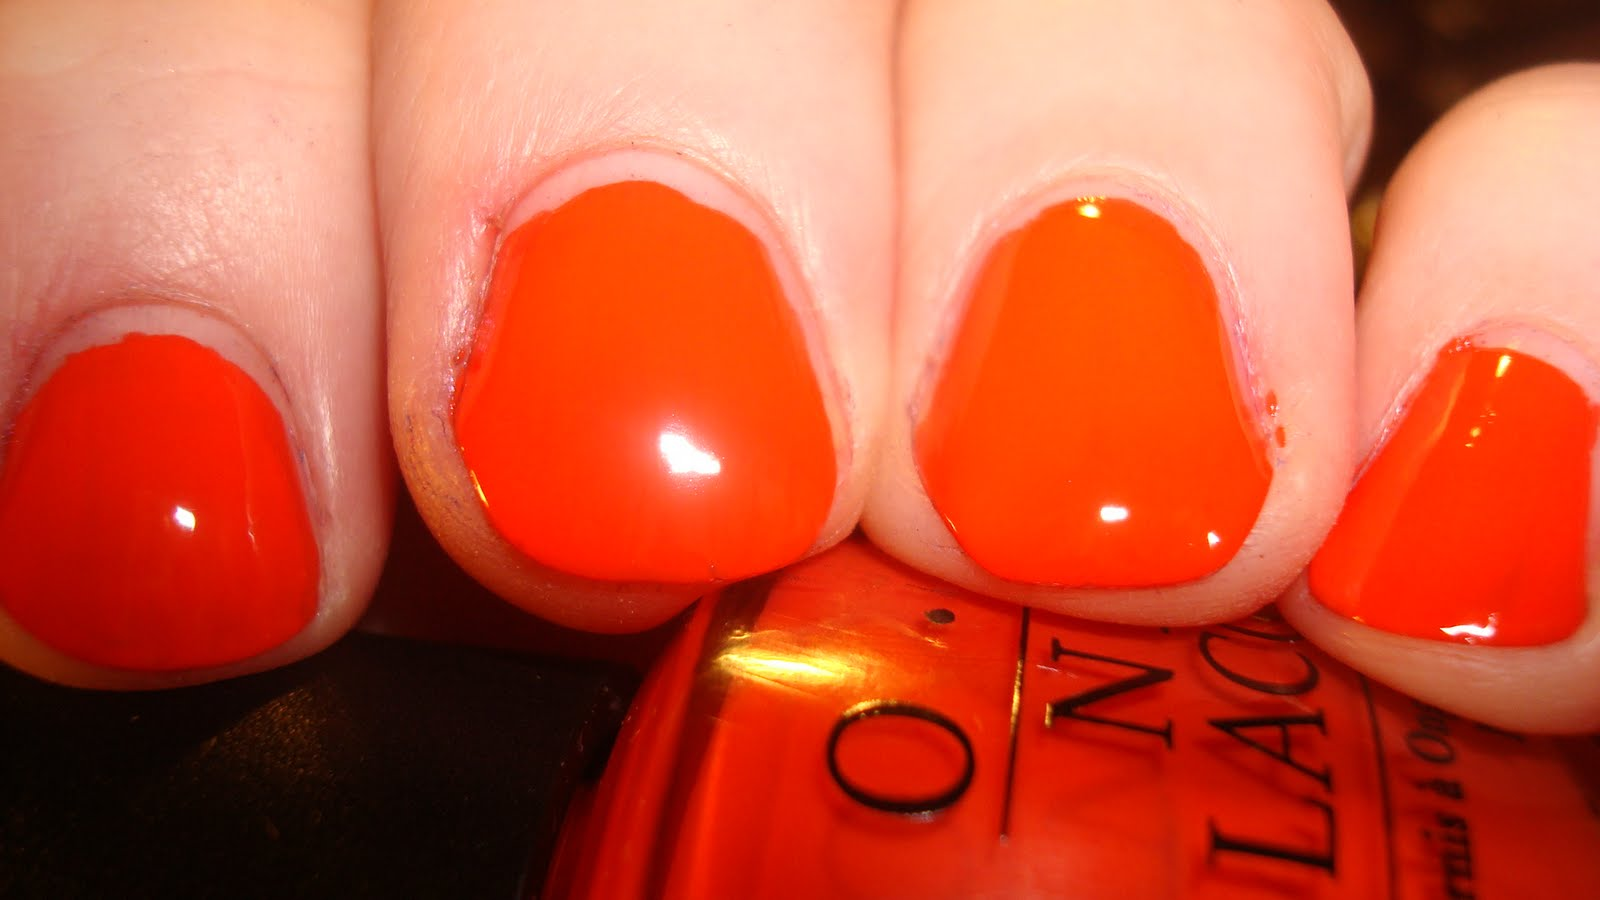 Opi A Good Mandarin Is Hard To Find Vs Hot And Spicy A Good Man-darin is Hard to